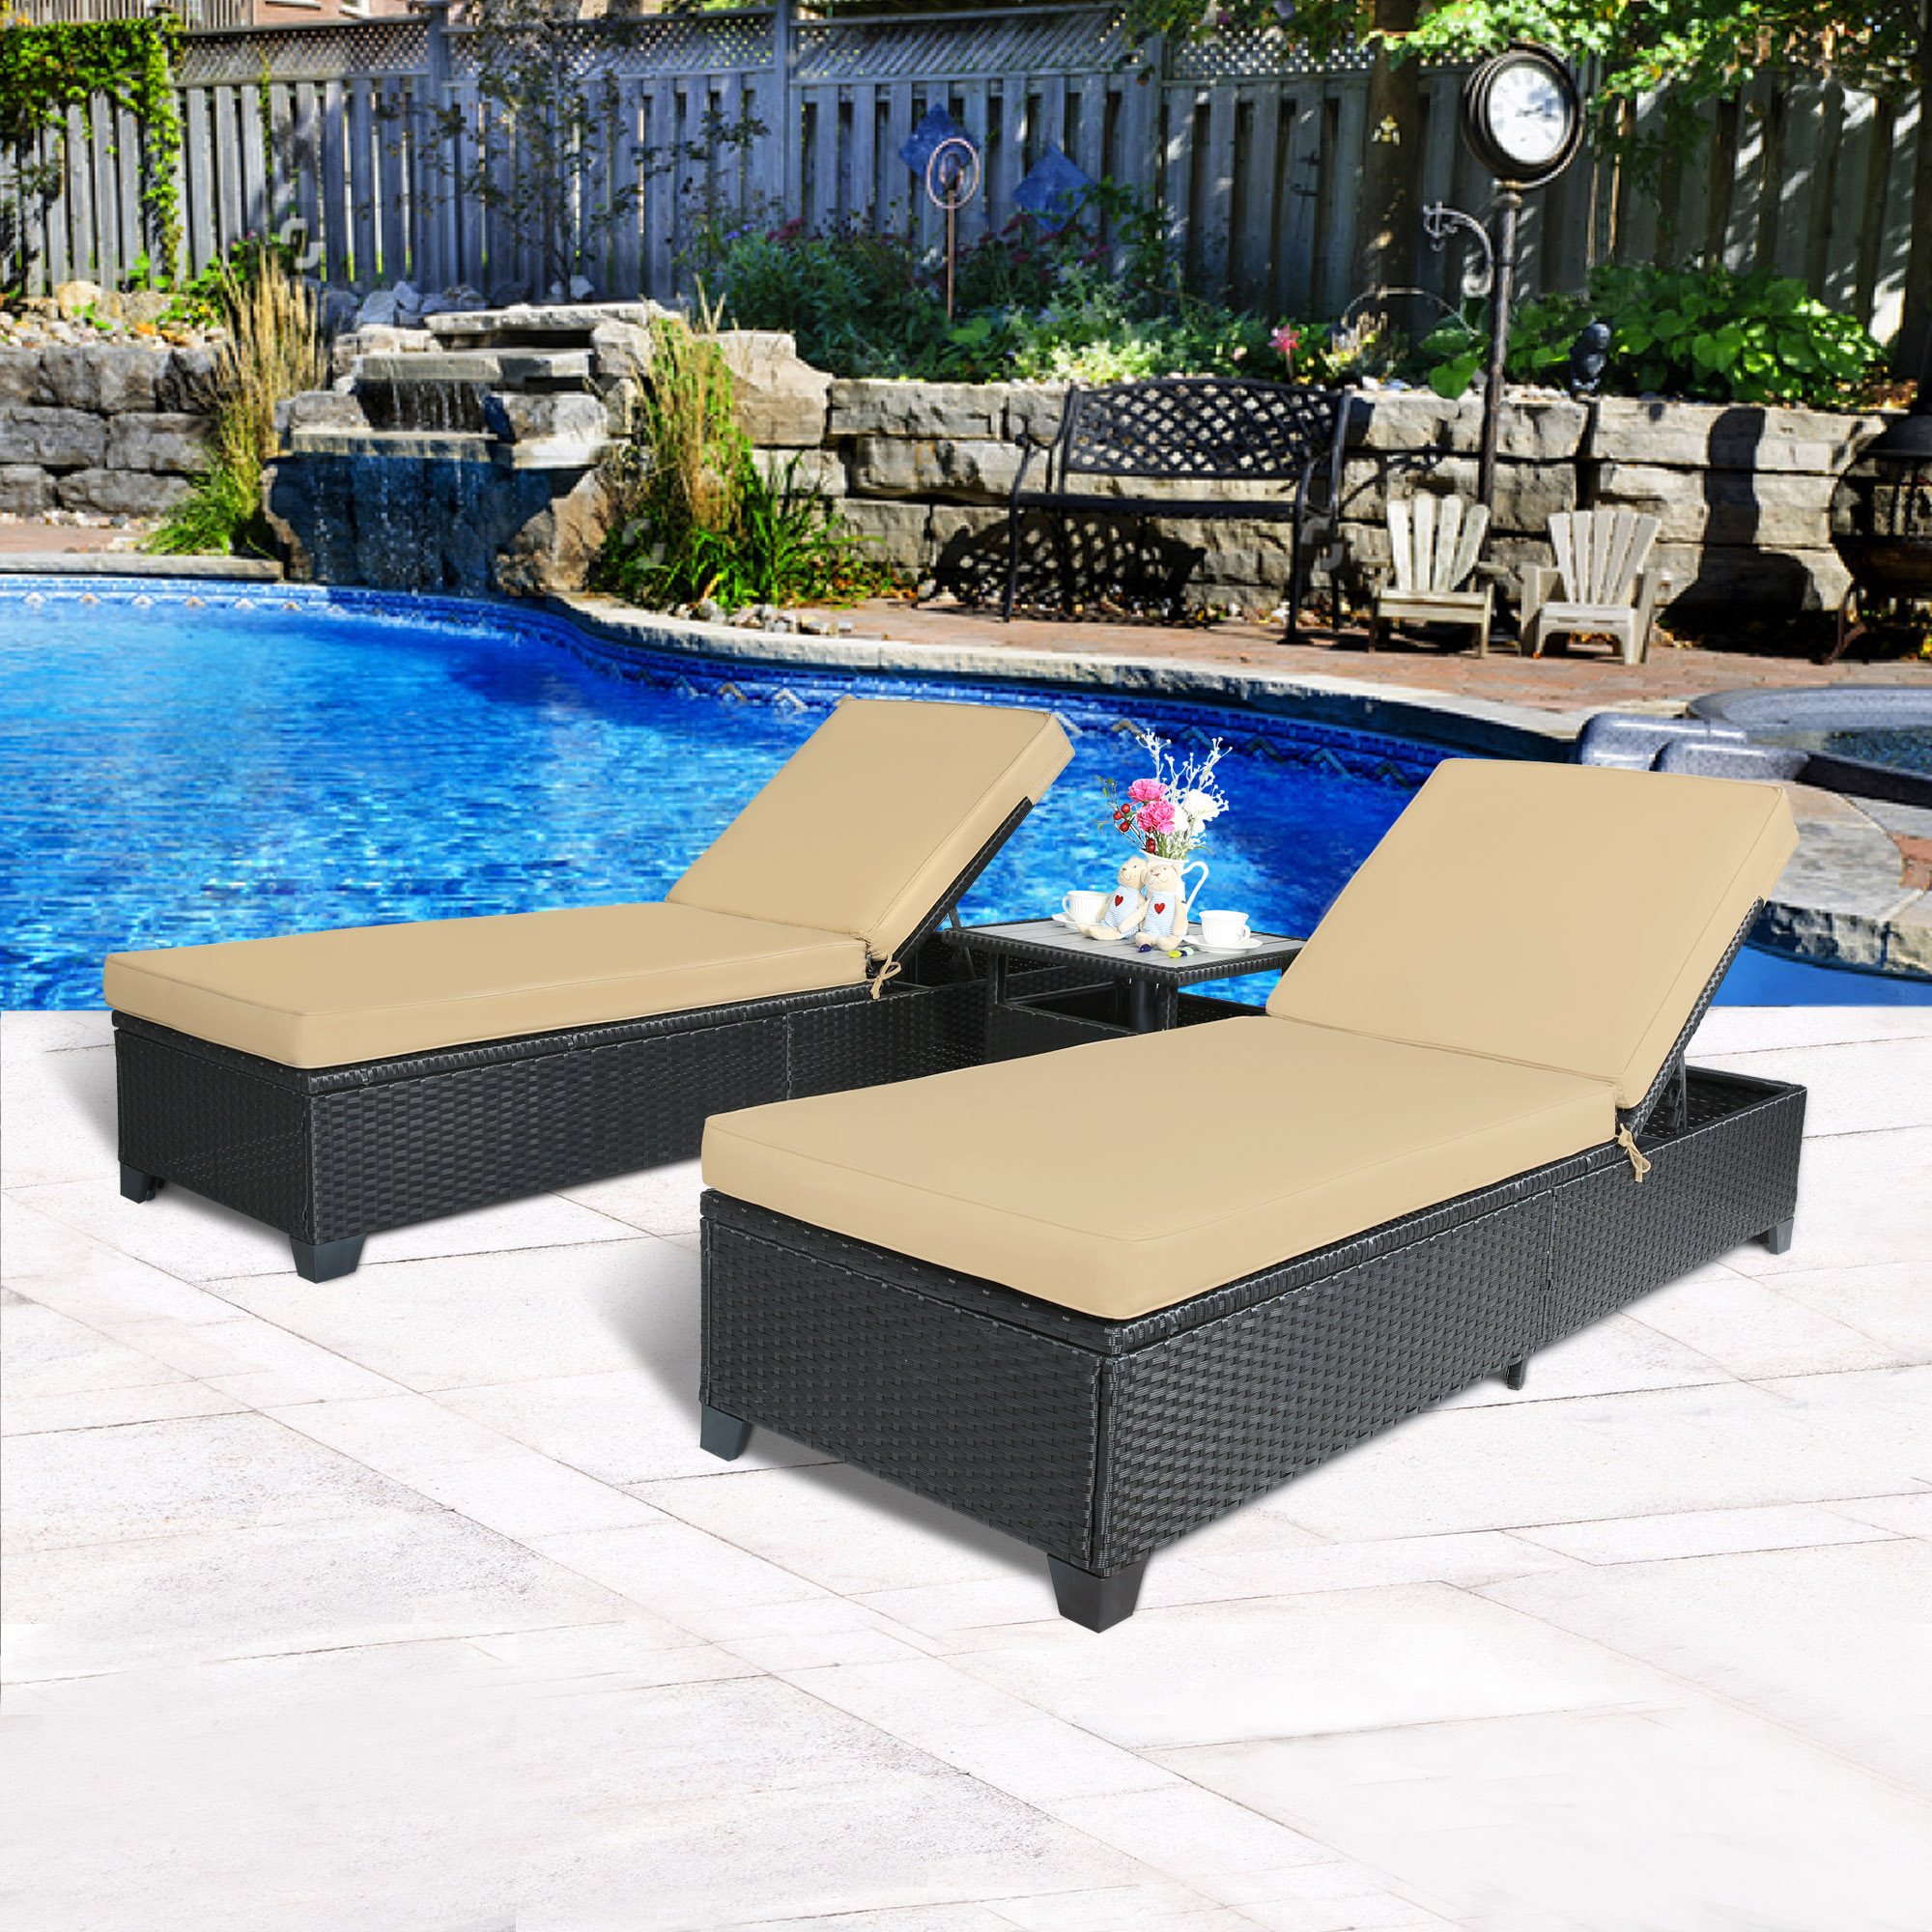 Cloud Mountain Rattan 3 Piece Outdoor Chaise Lounge Set by Cloud Mountain